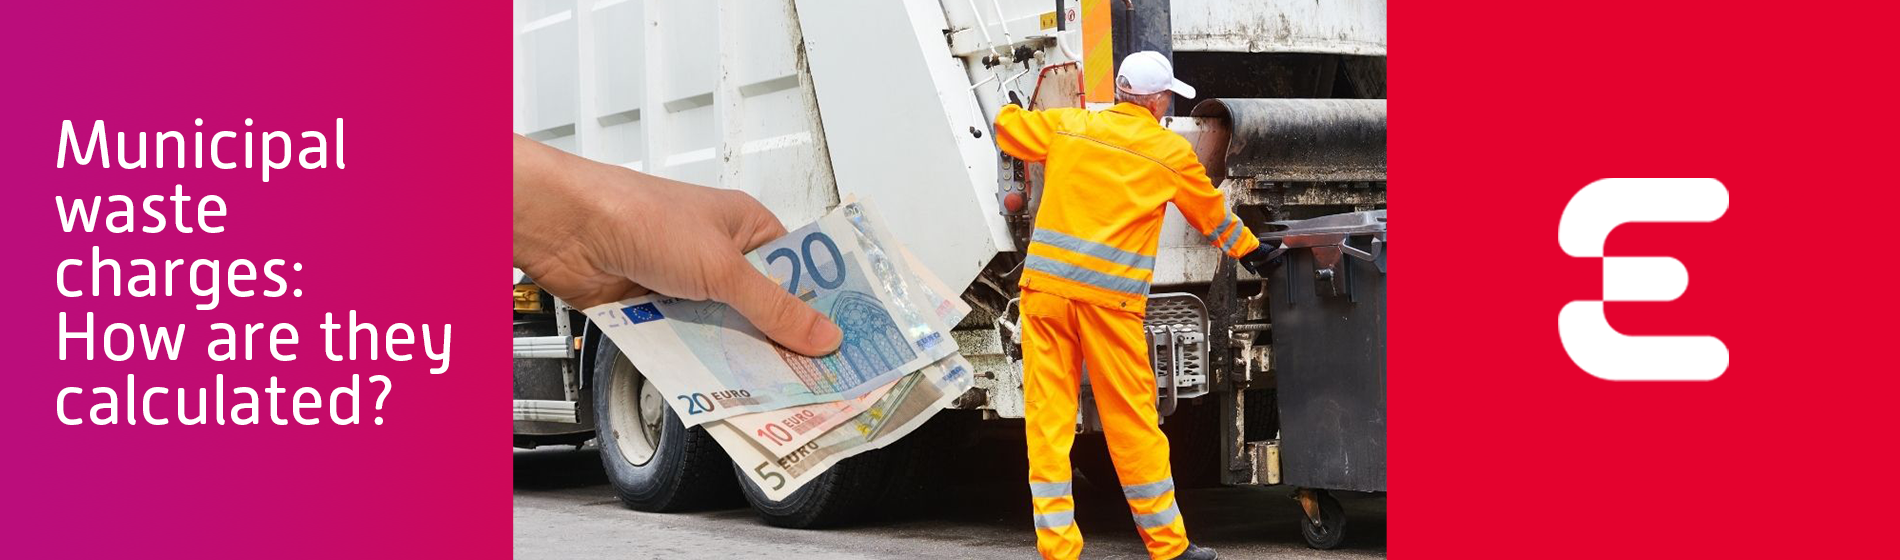 Municipal waste charges: How are they calculated?